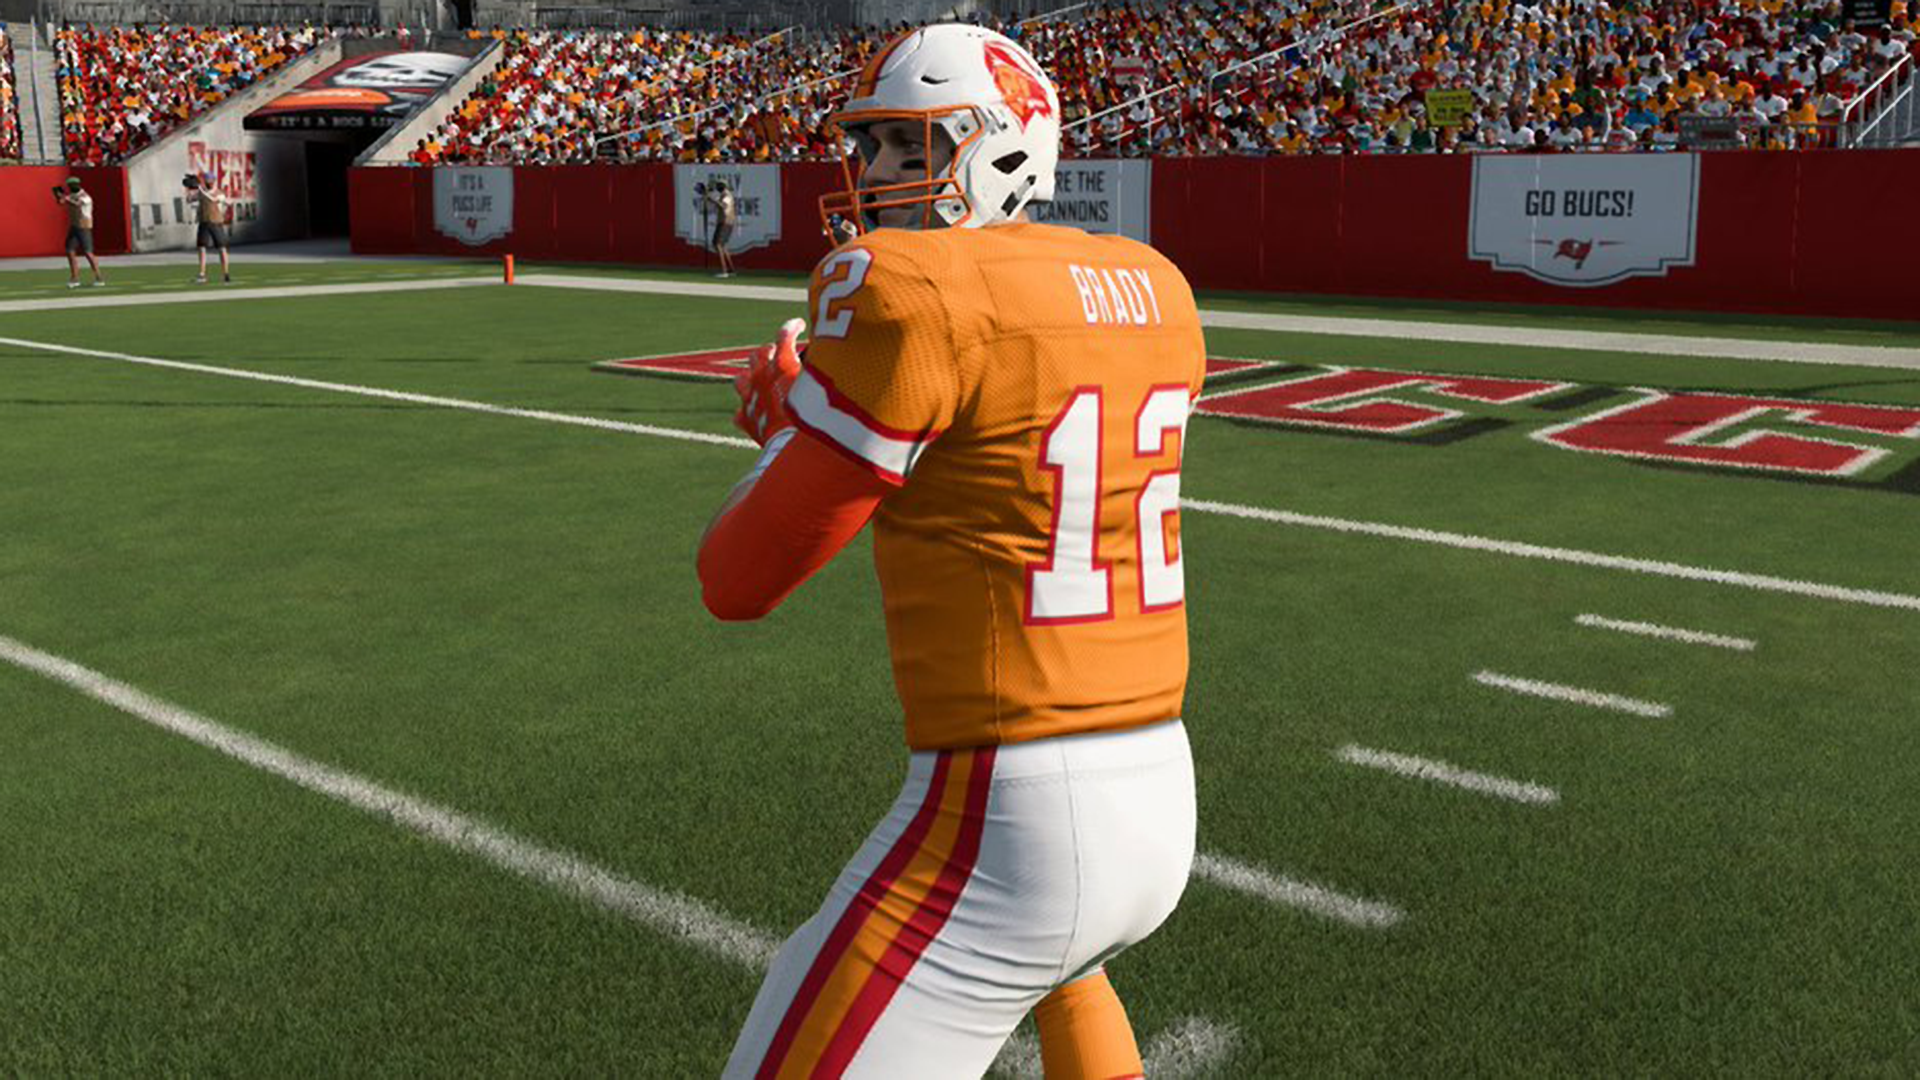 This is why the Buccaneers didn't have creamsicle jerseys with uniform release